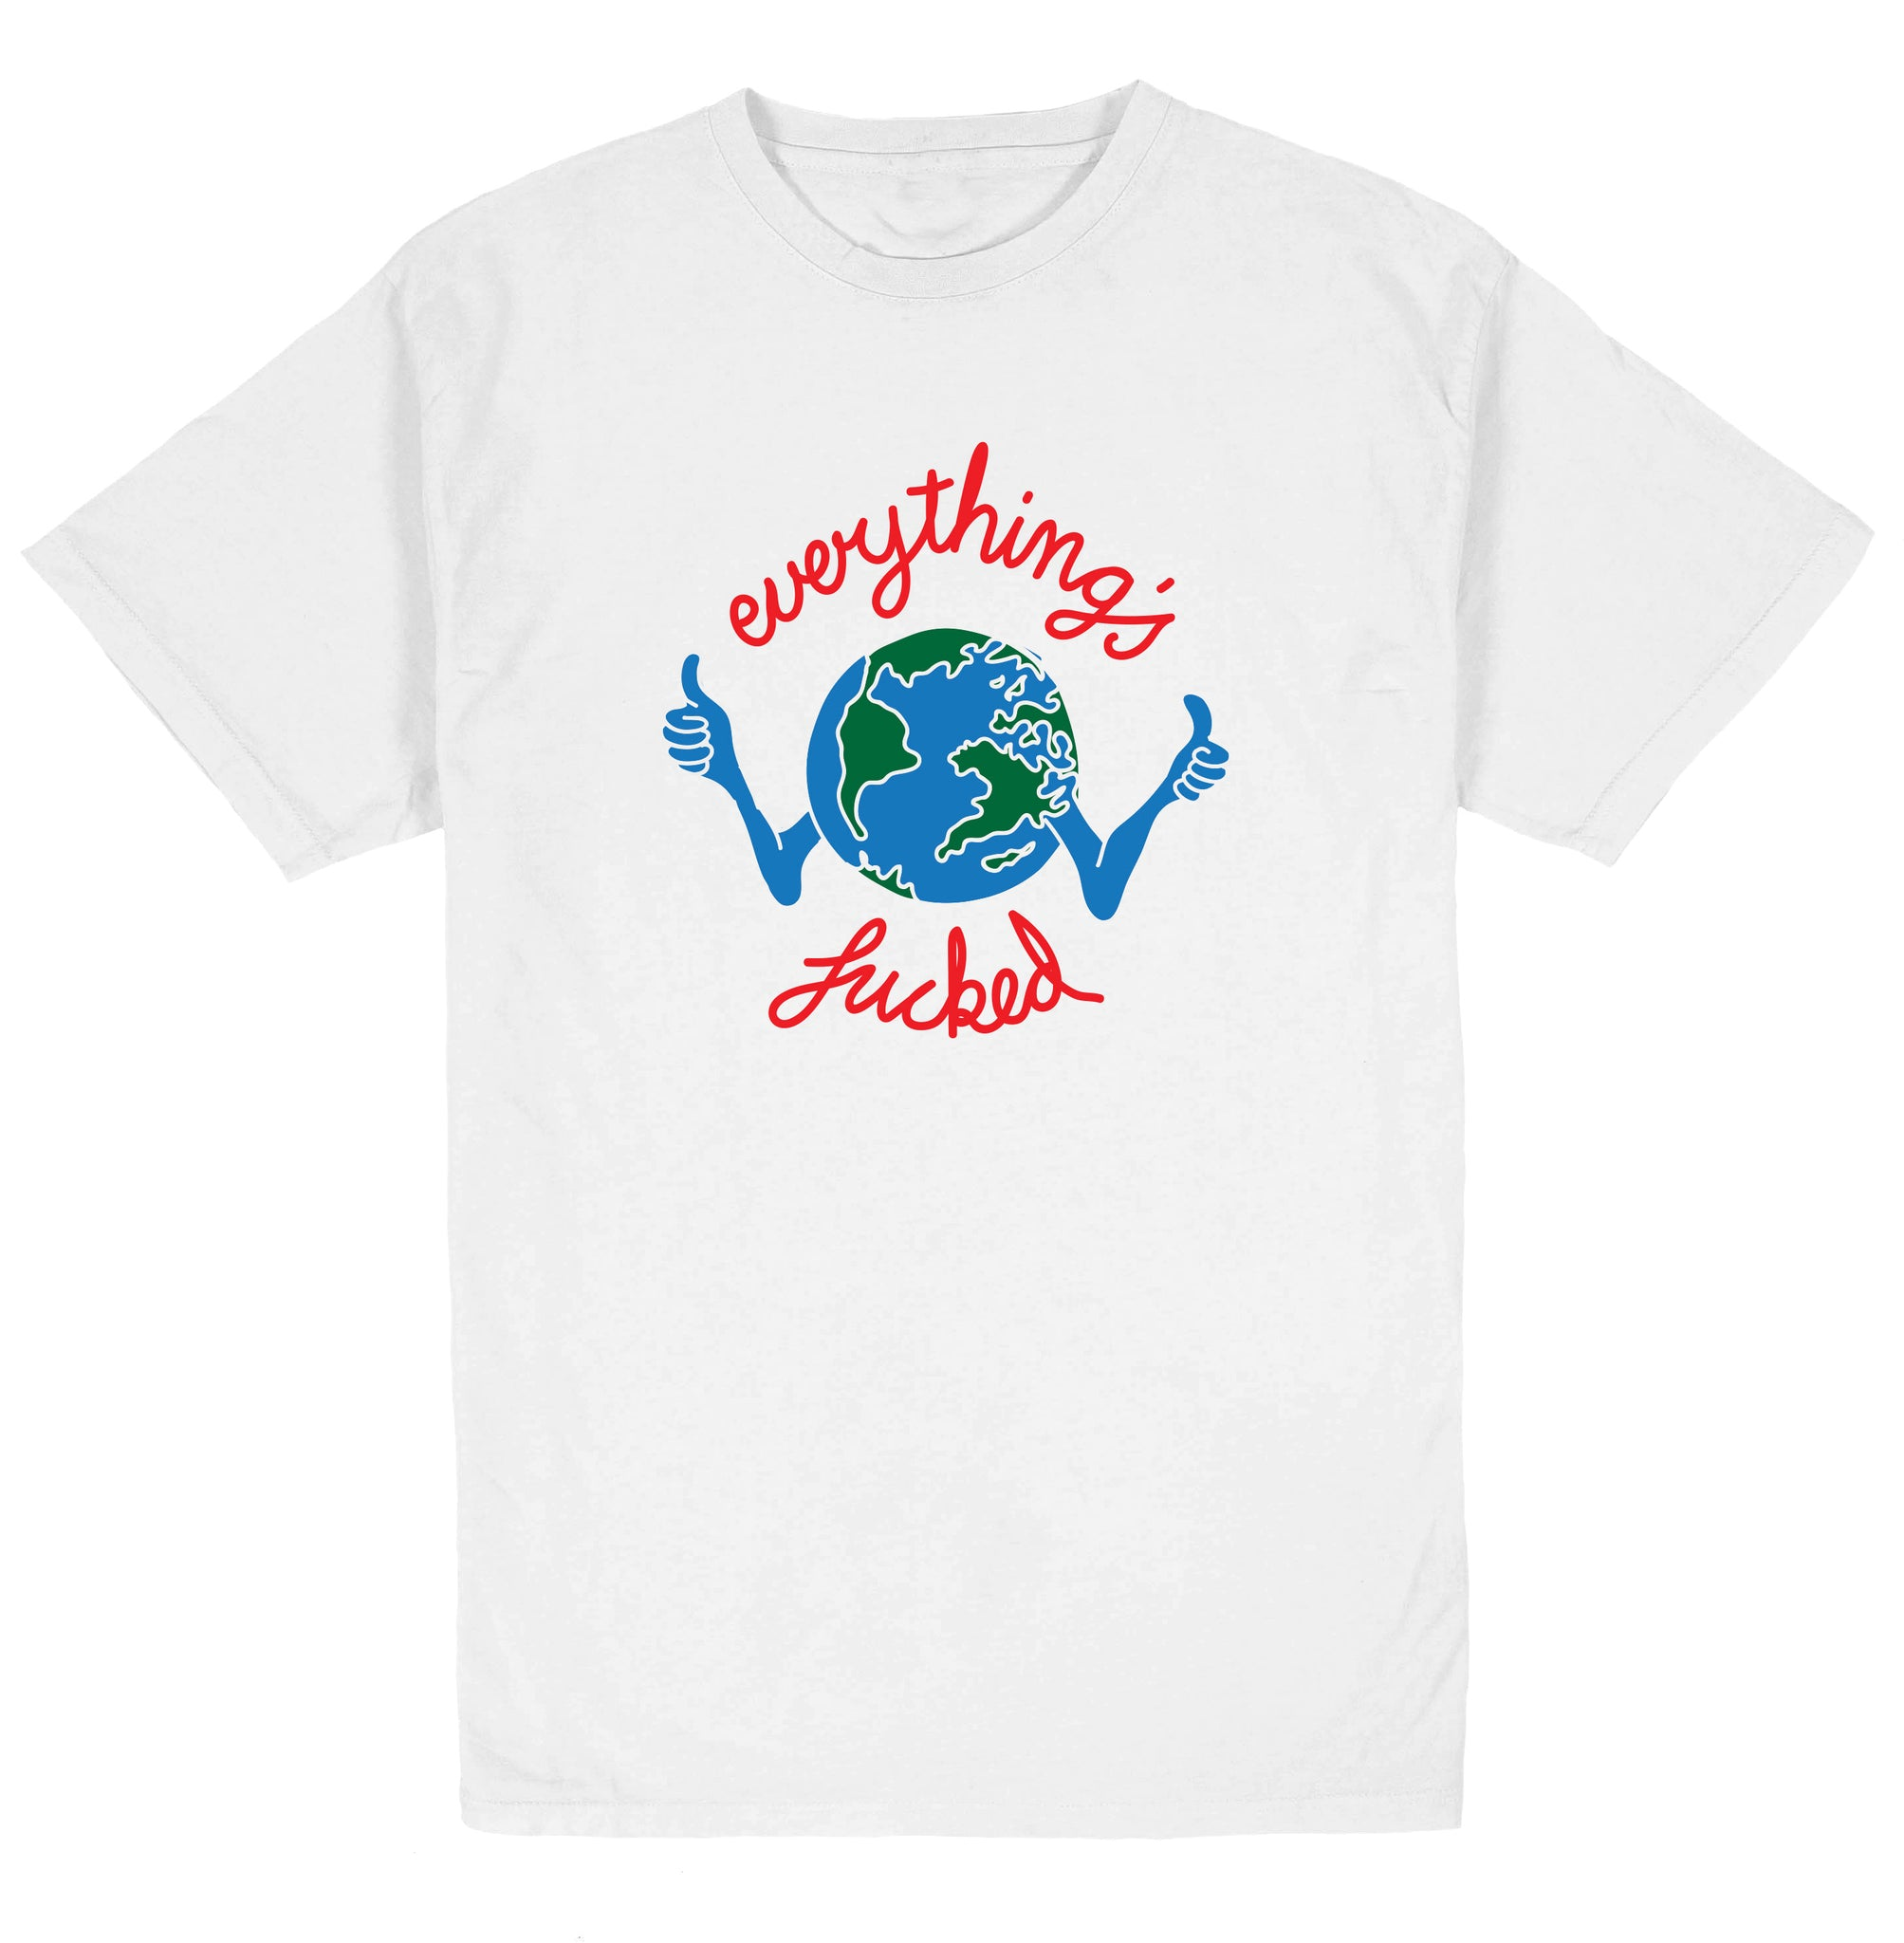 EVERYTHINGS FUCKED SS TEE WHITE